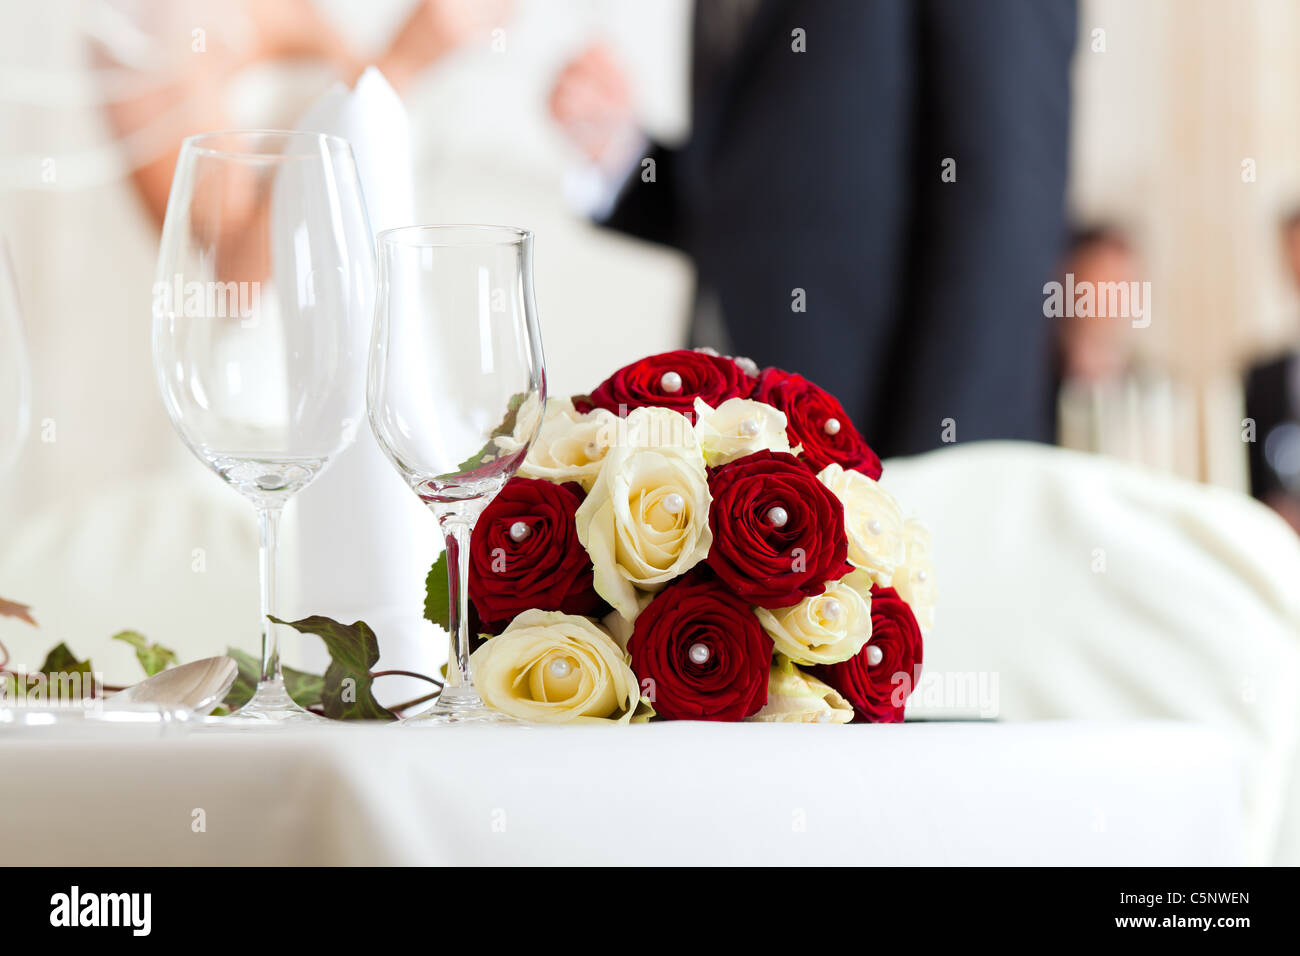 Wedding table at a wedding feast decorated with bridal bouquet - Stock Image